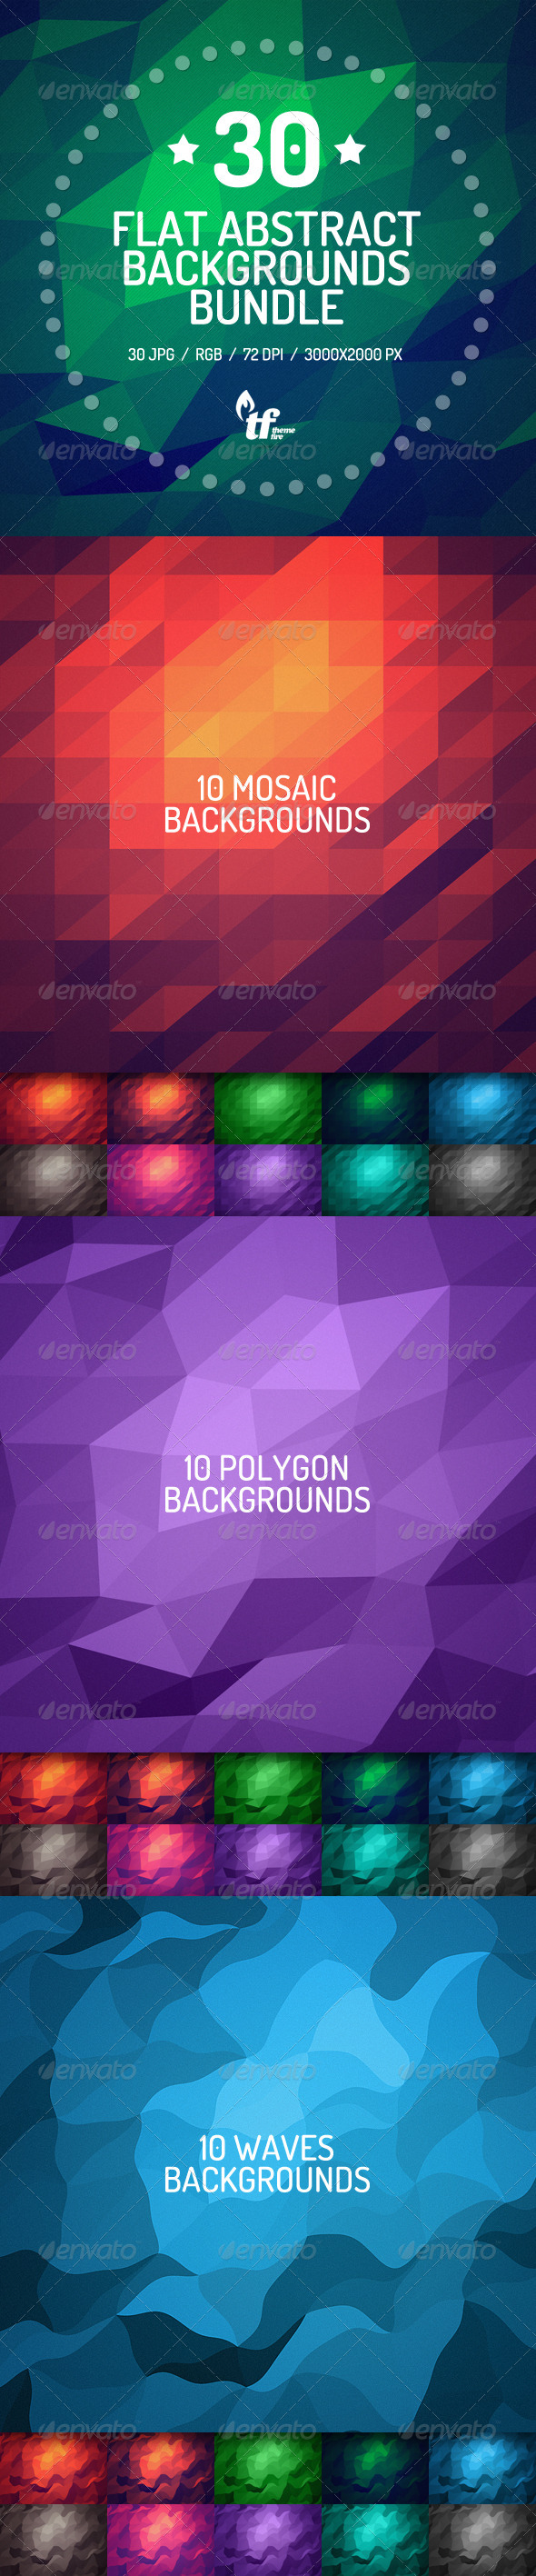 GraphicRiver 30 Flat Abstract Backgrounds Bundle 7489202